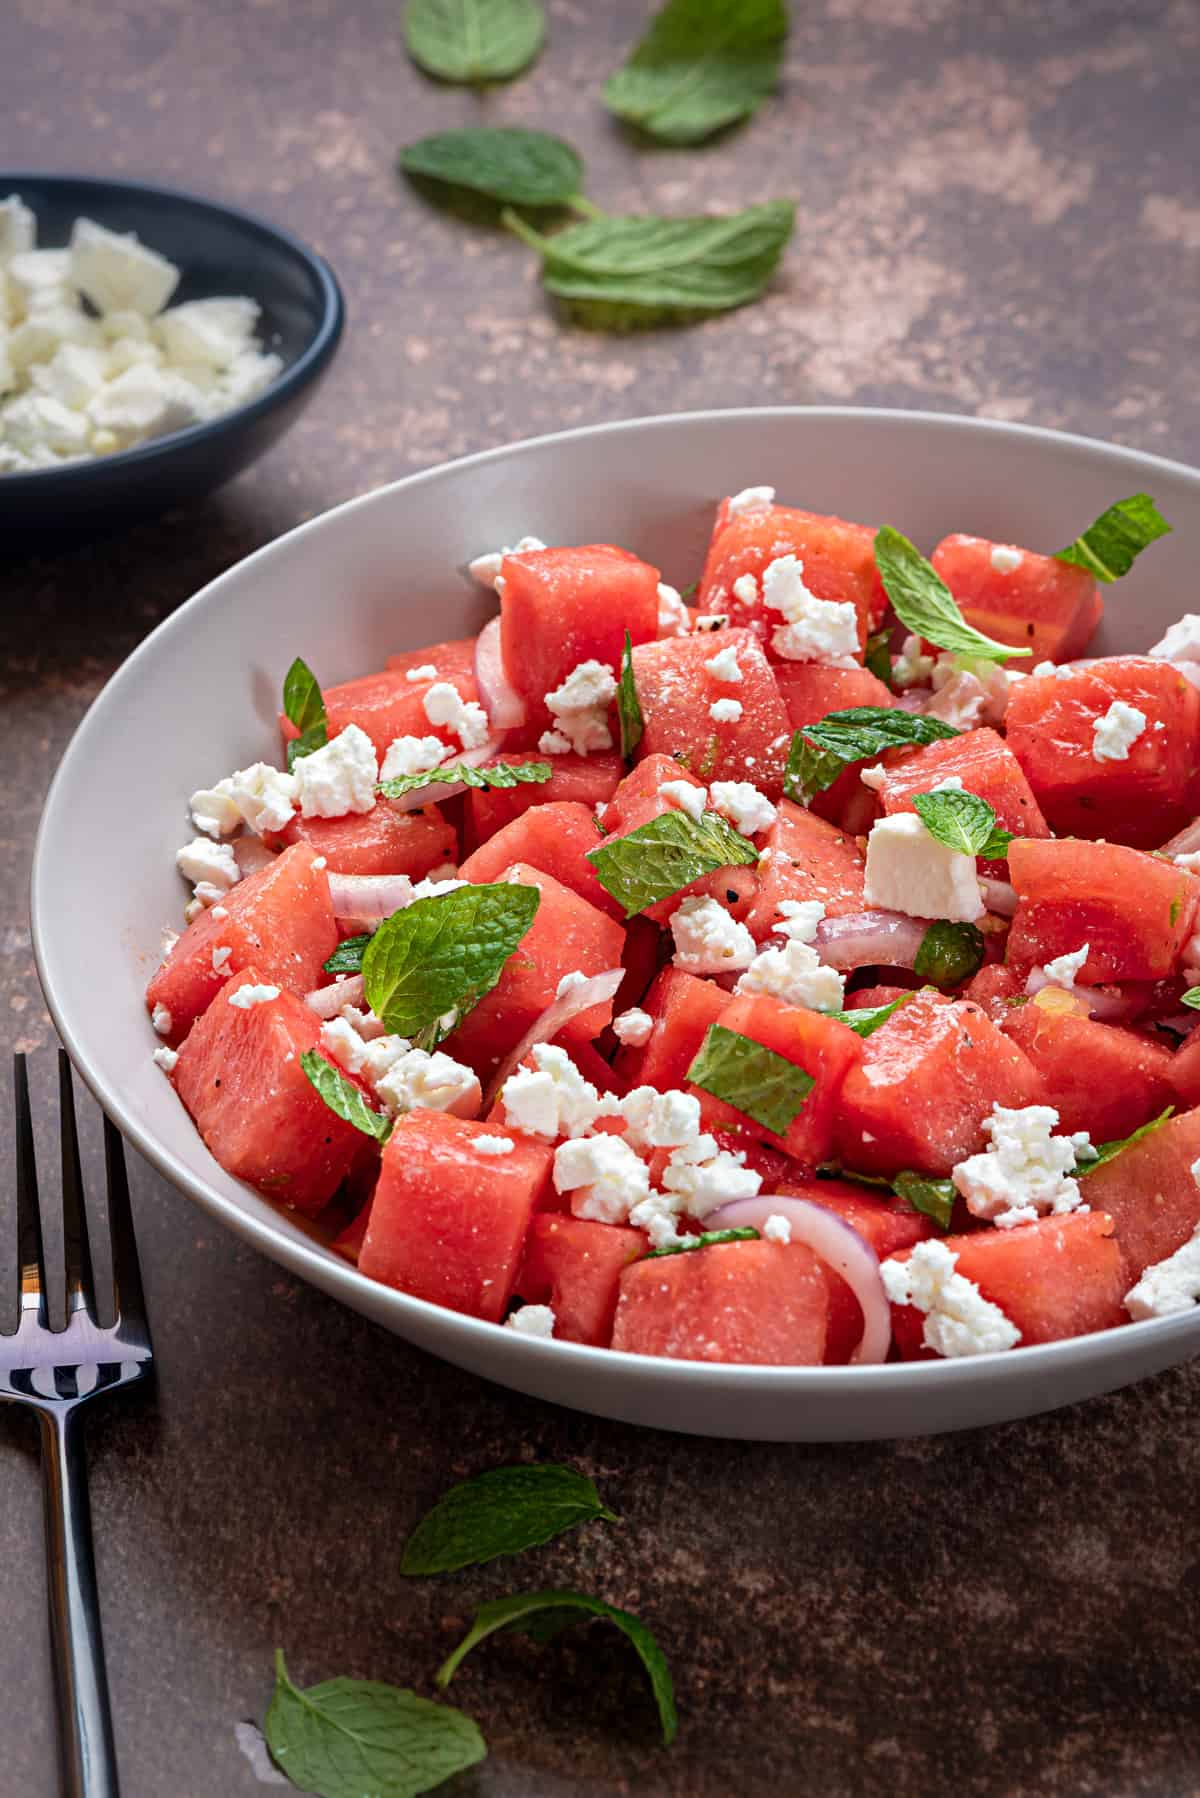 watermelon feta and mint salad in a white bowl on a brown tabletop with a silver fork